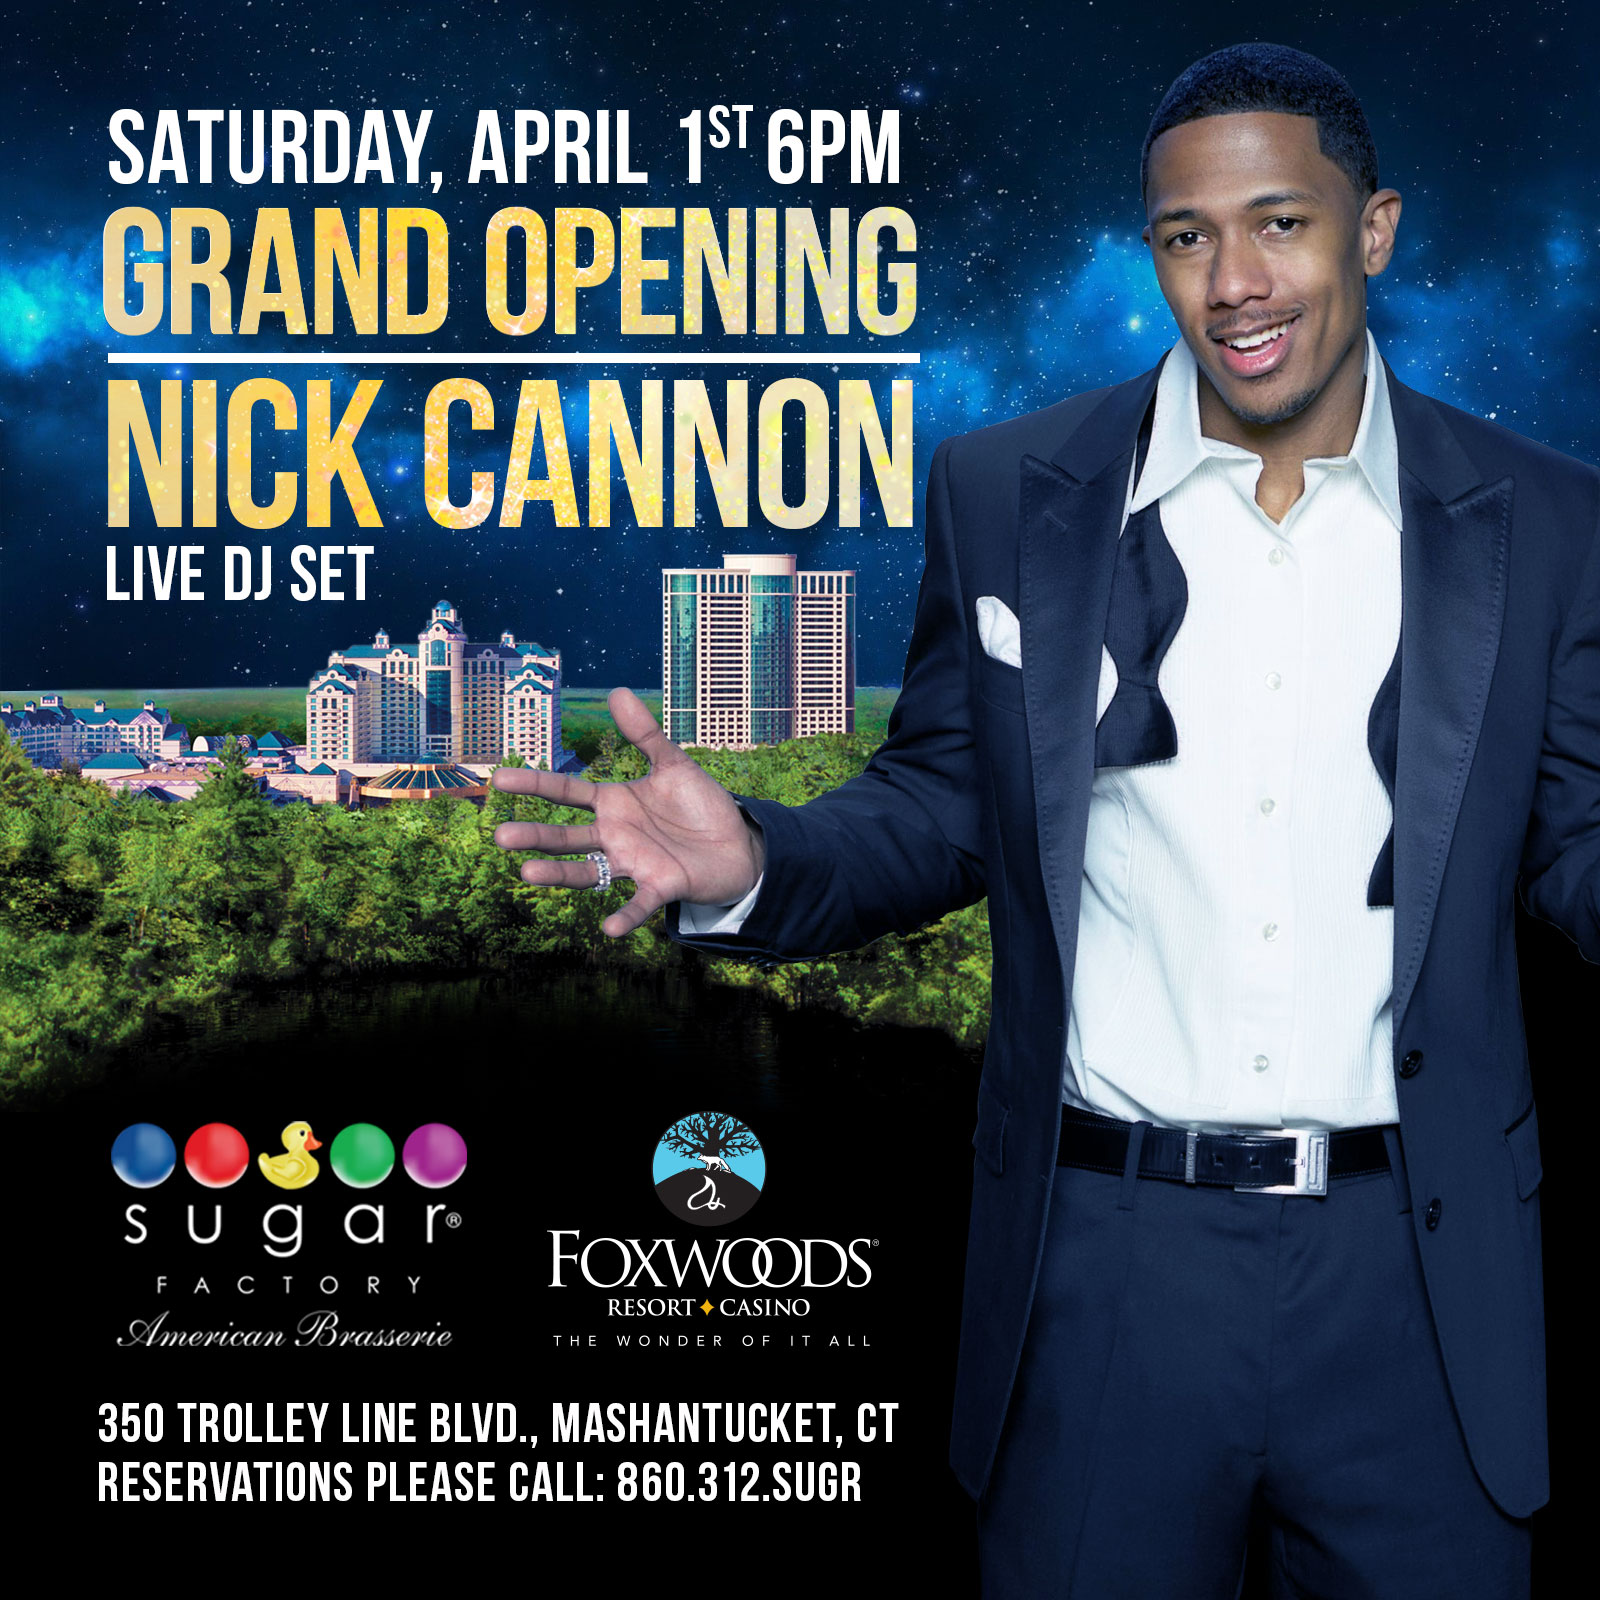 Nick Cannon Set to Rock Sugar Factory Foxwood Grand Opening this April Fools Day Weekend